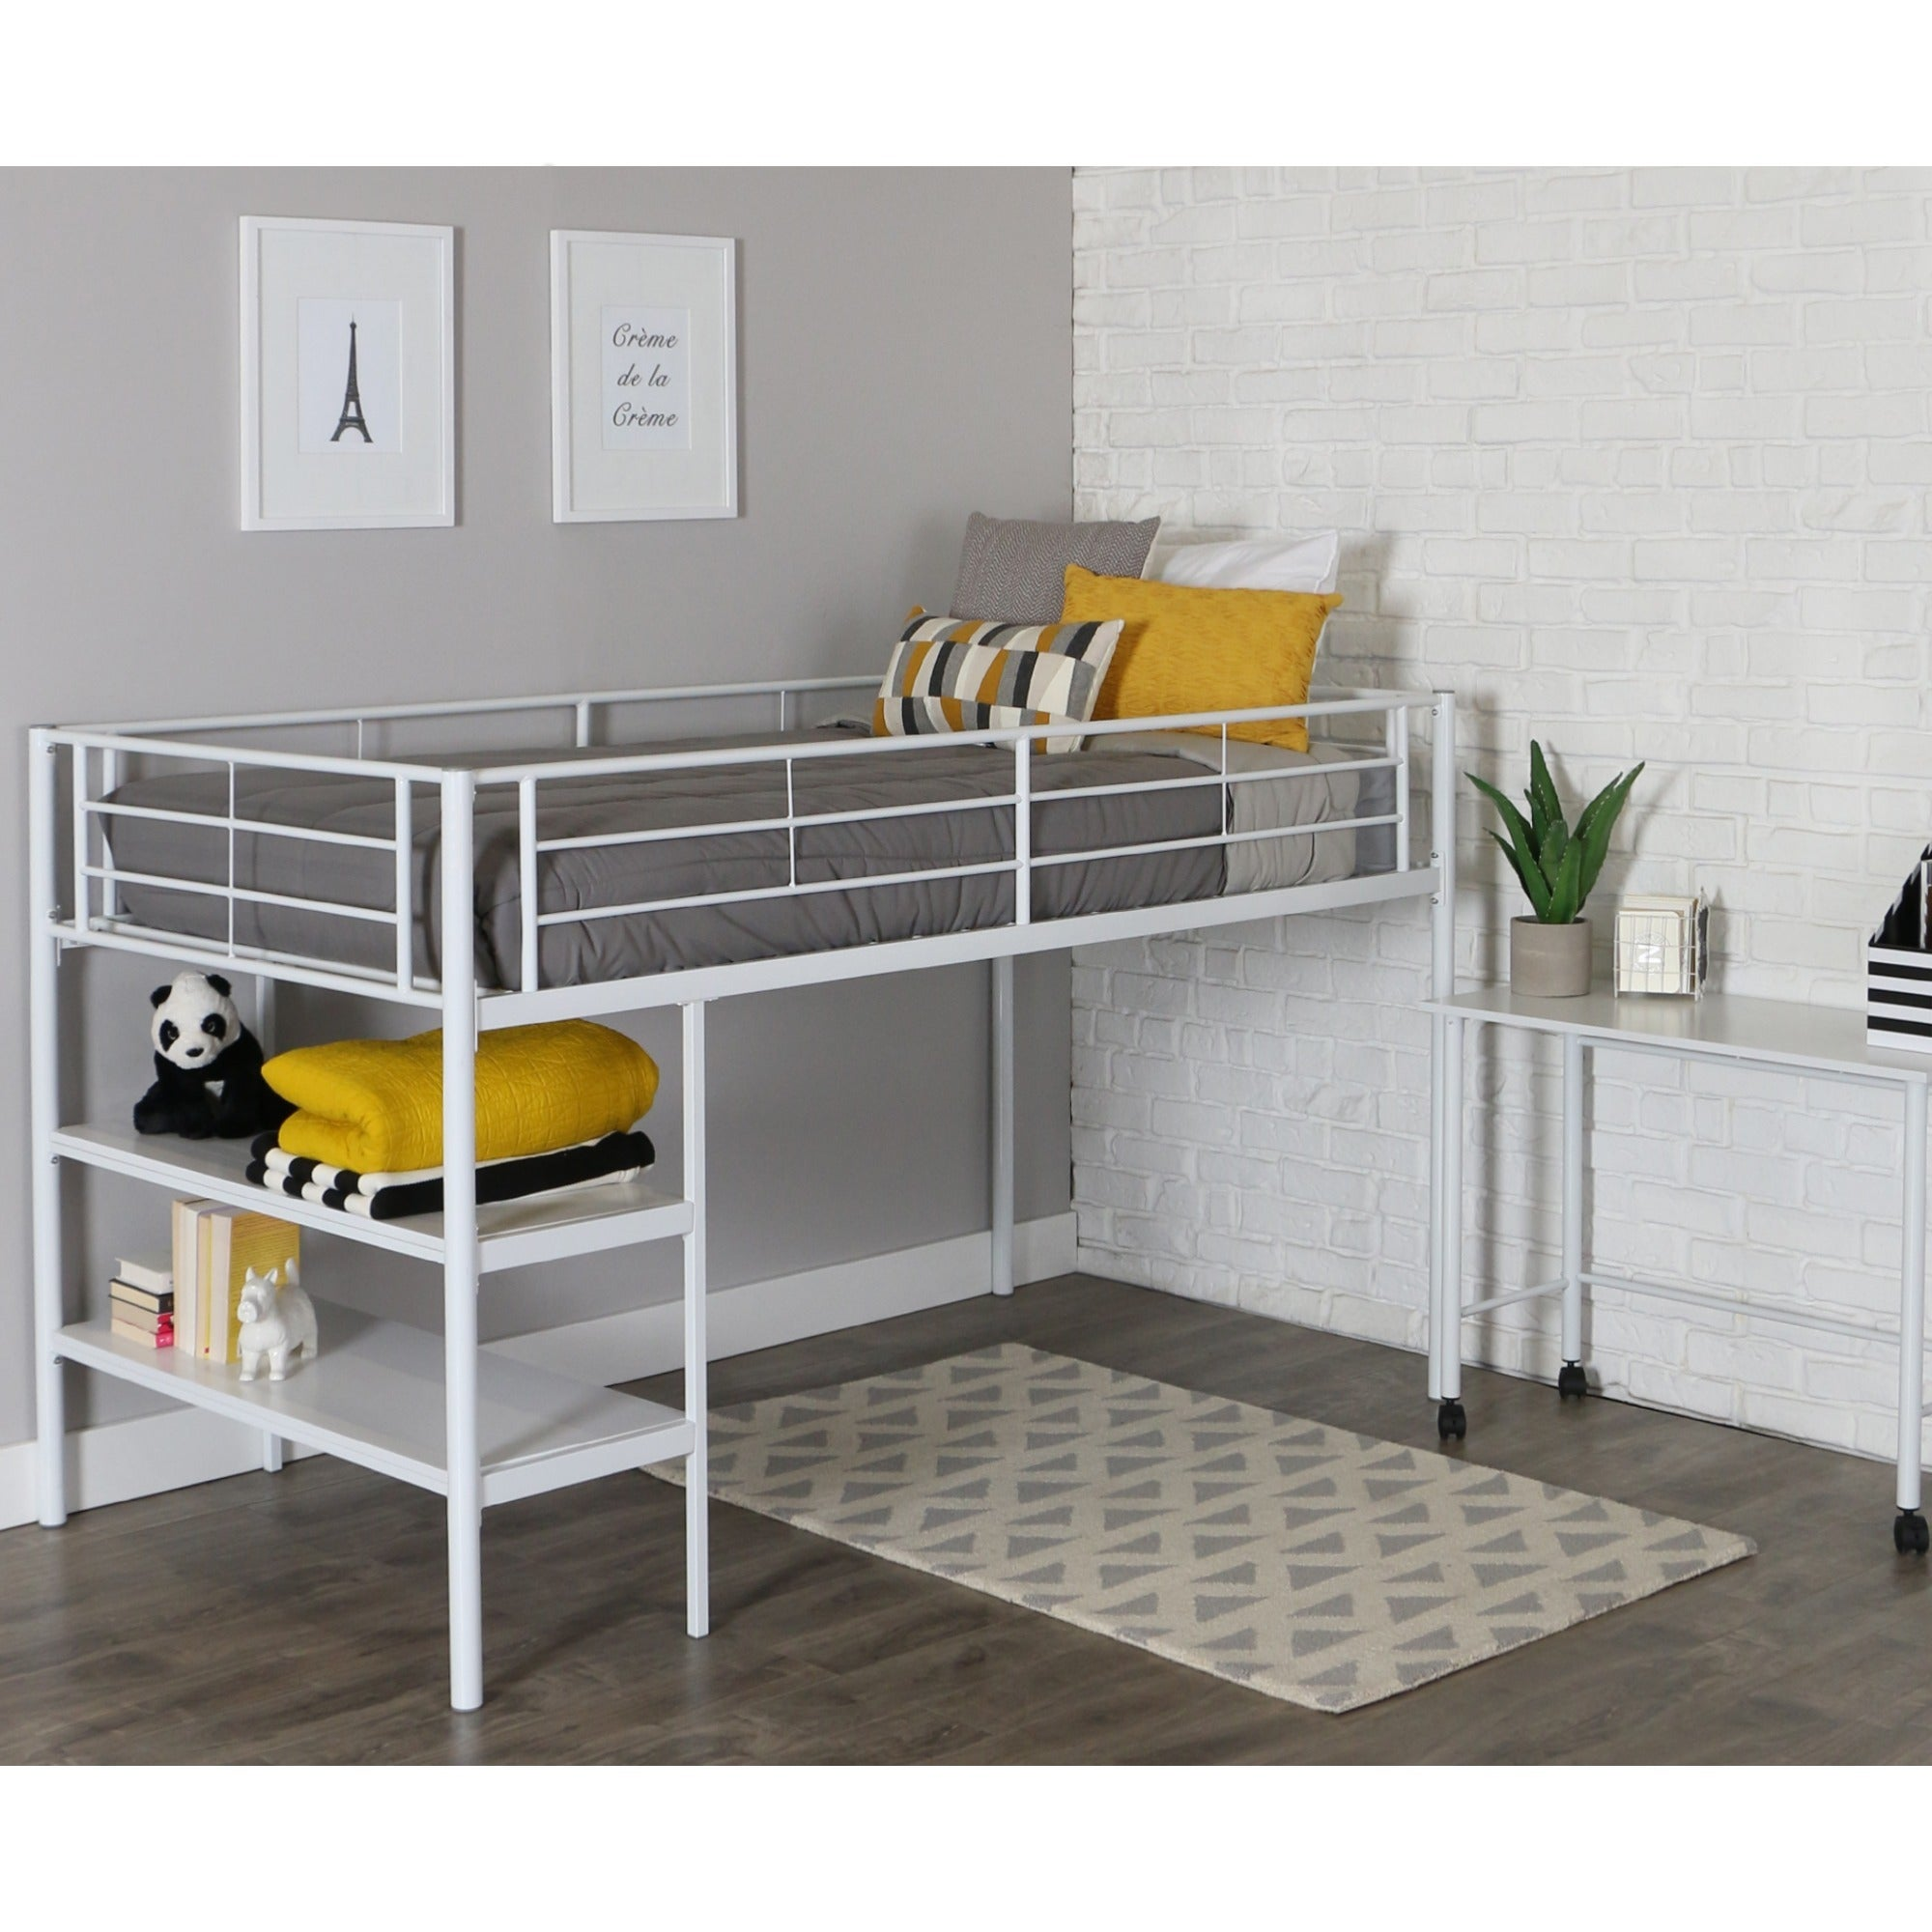 Walker Edison White Twin Loft Bed With Desk and Shelves (...